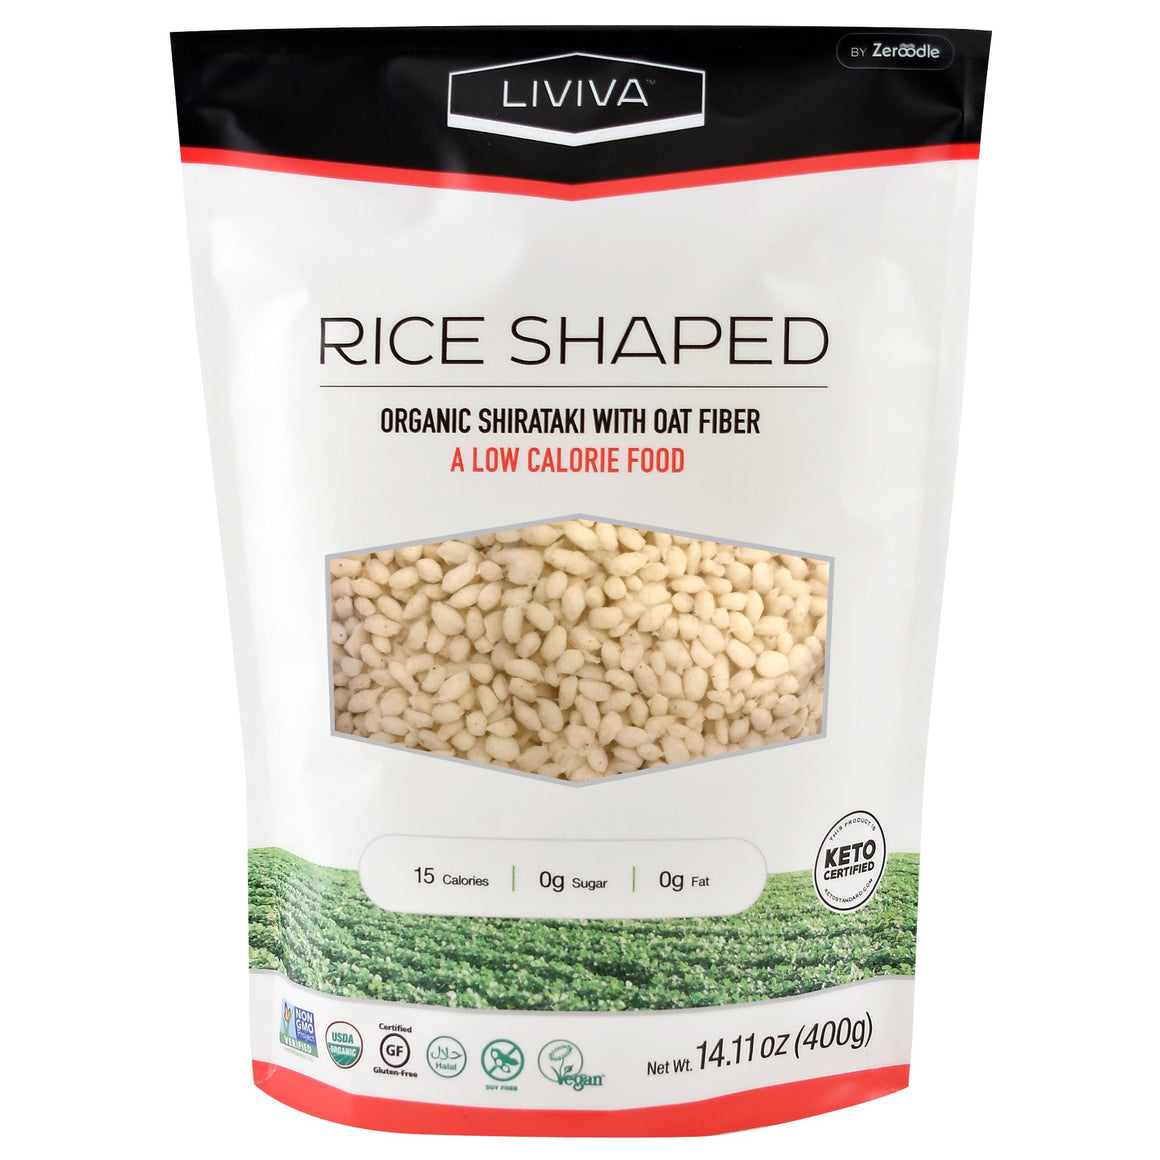 Liviva Organic Rice Shaped Shirataki with Oat Fiber